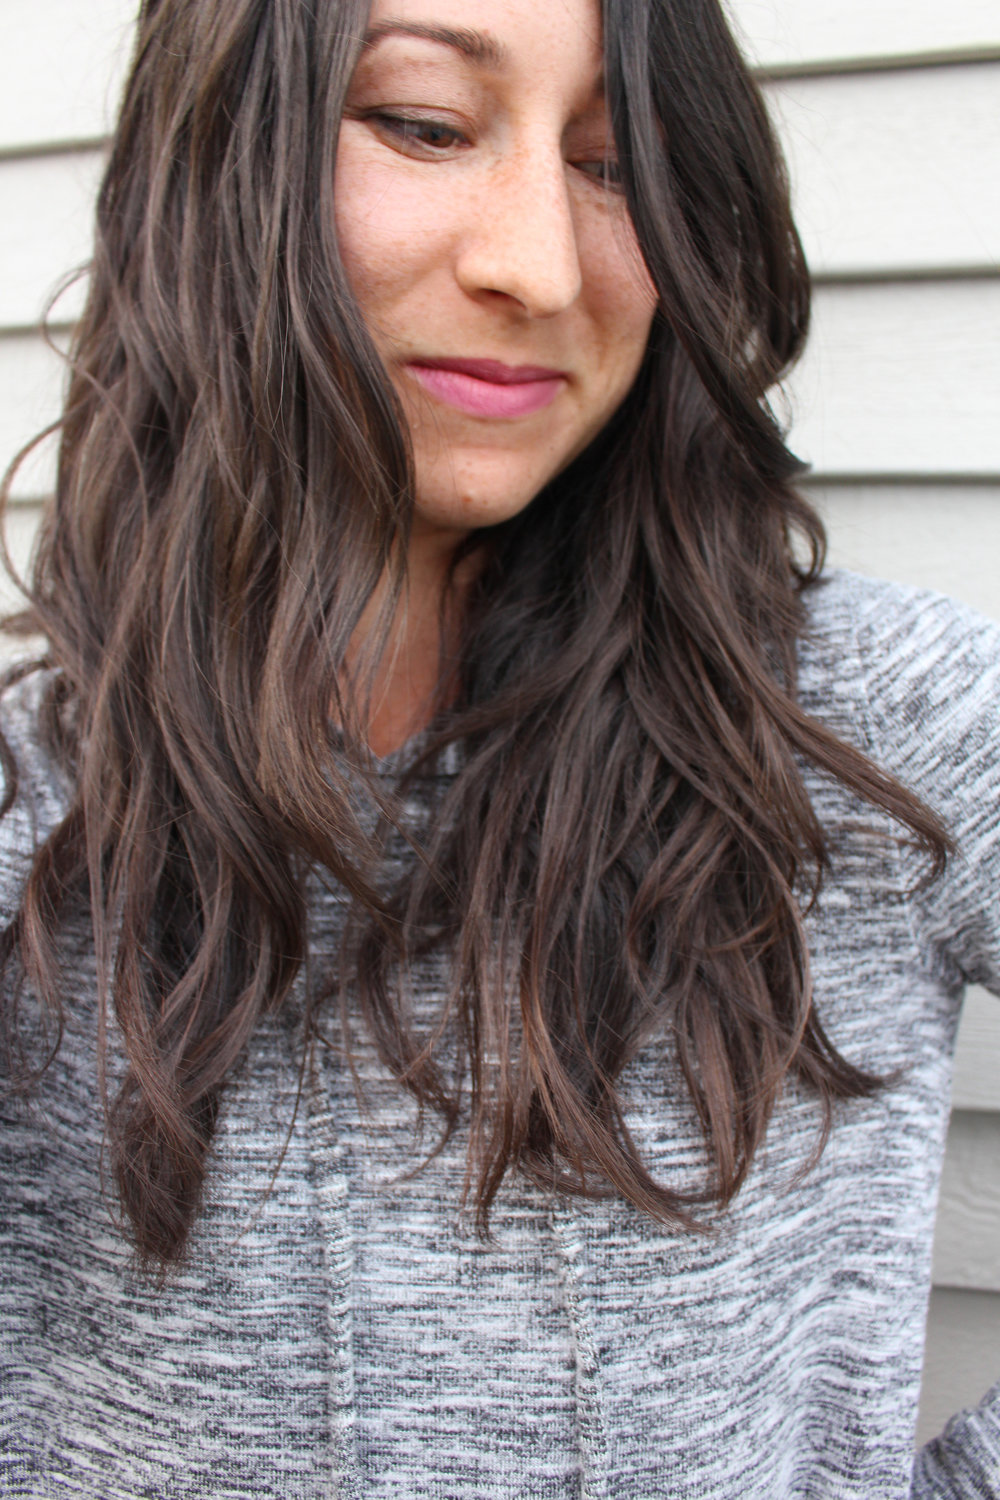 Kendra Castillo: Simplifying My Morning Beauty Routine with 3 Simple Items